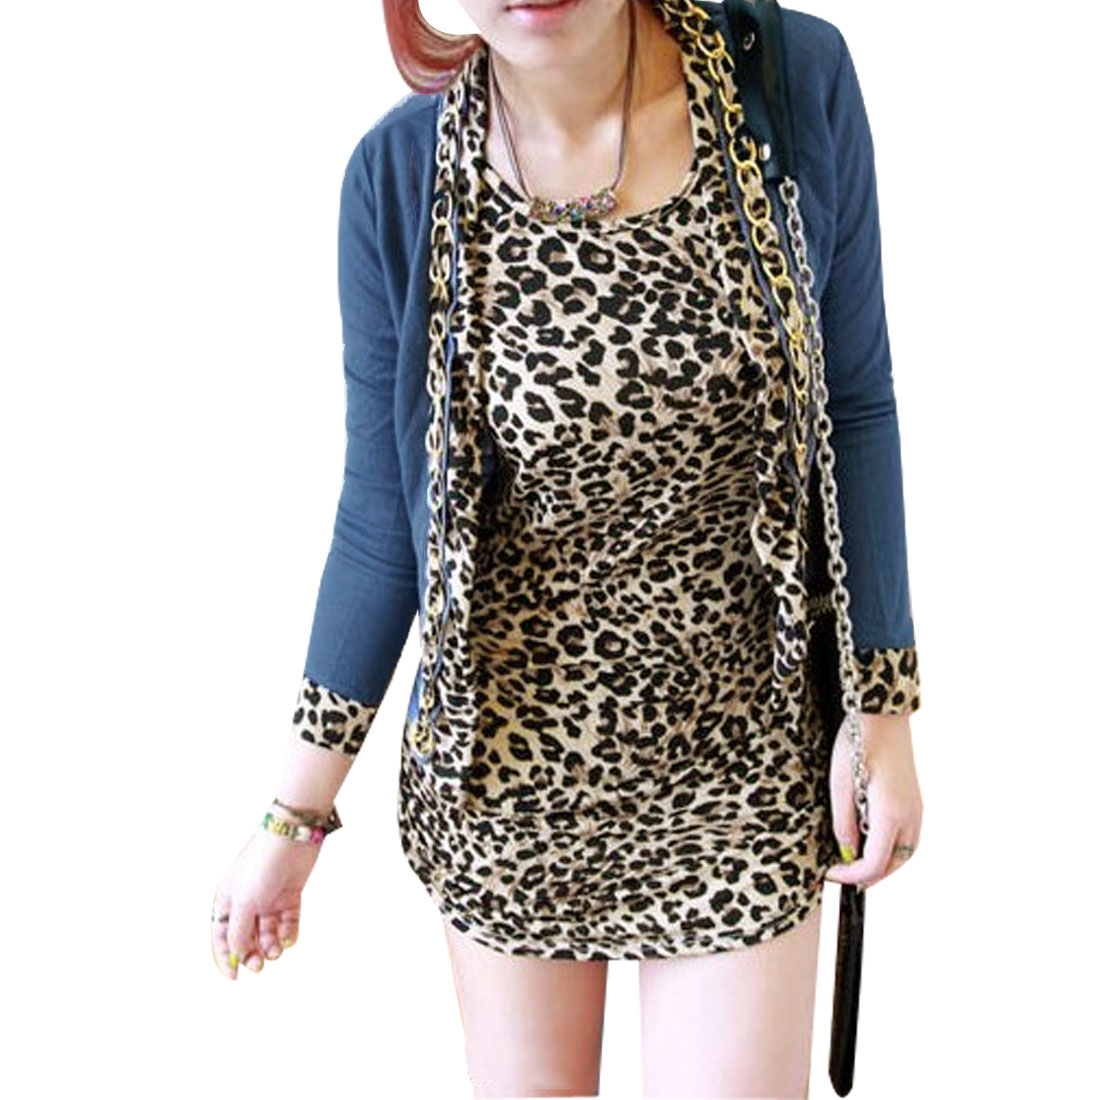 Ladies Steel Blue Metal Chain Decor Stretchy Knitted Coat w Beige Black Leopard Prints Tank Top XS